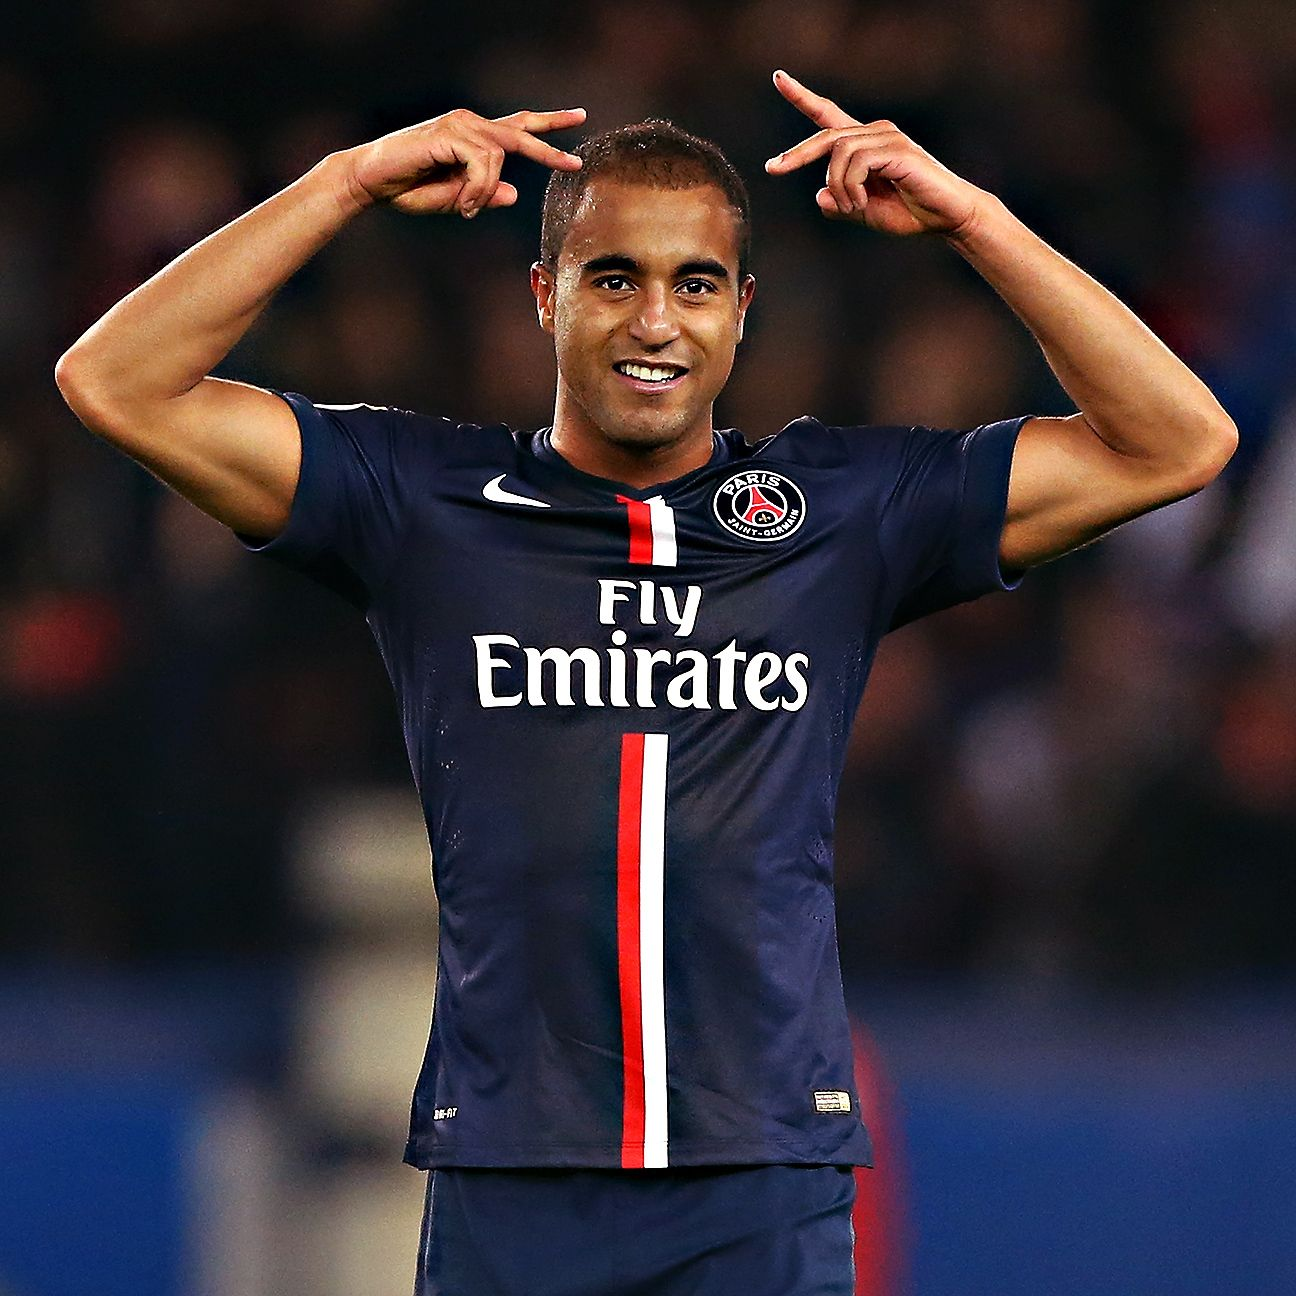 Paris St Germain: Lucas Moura And Edinson Cavani Led The